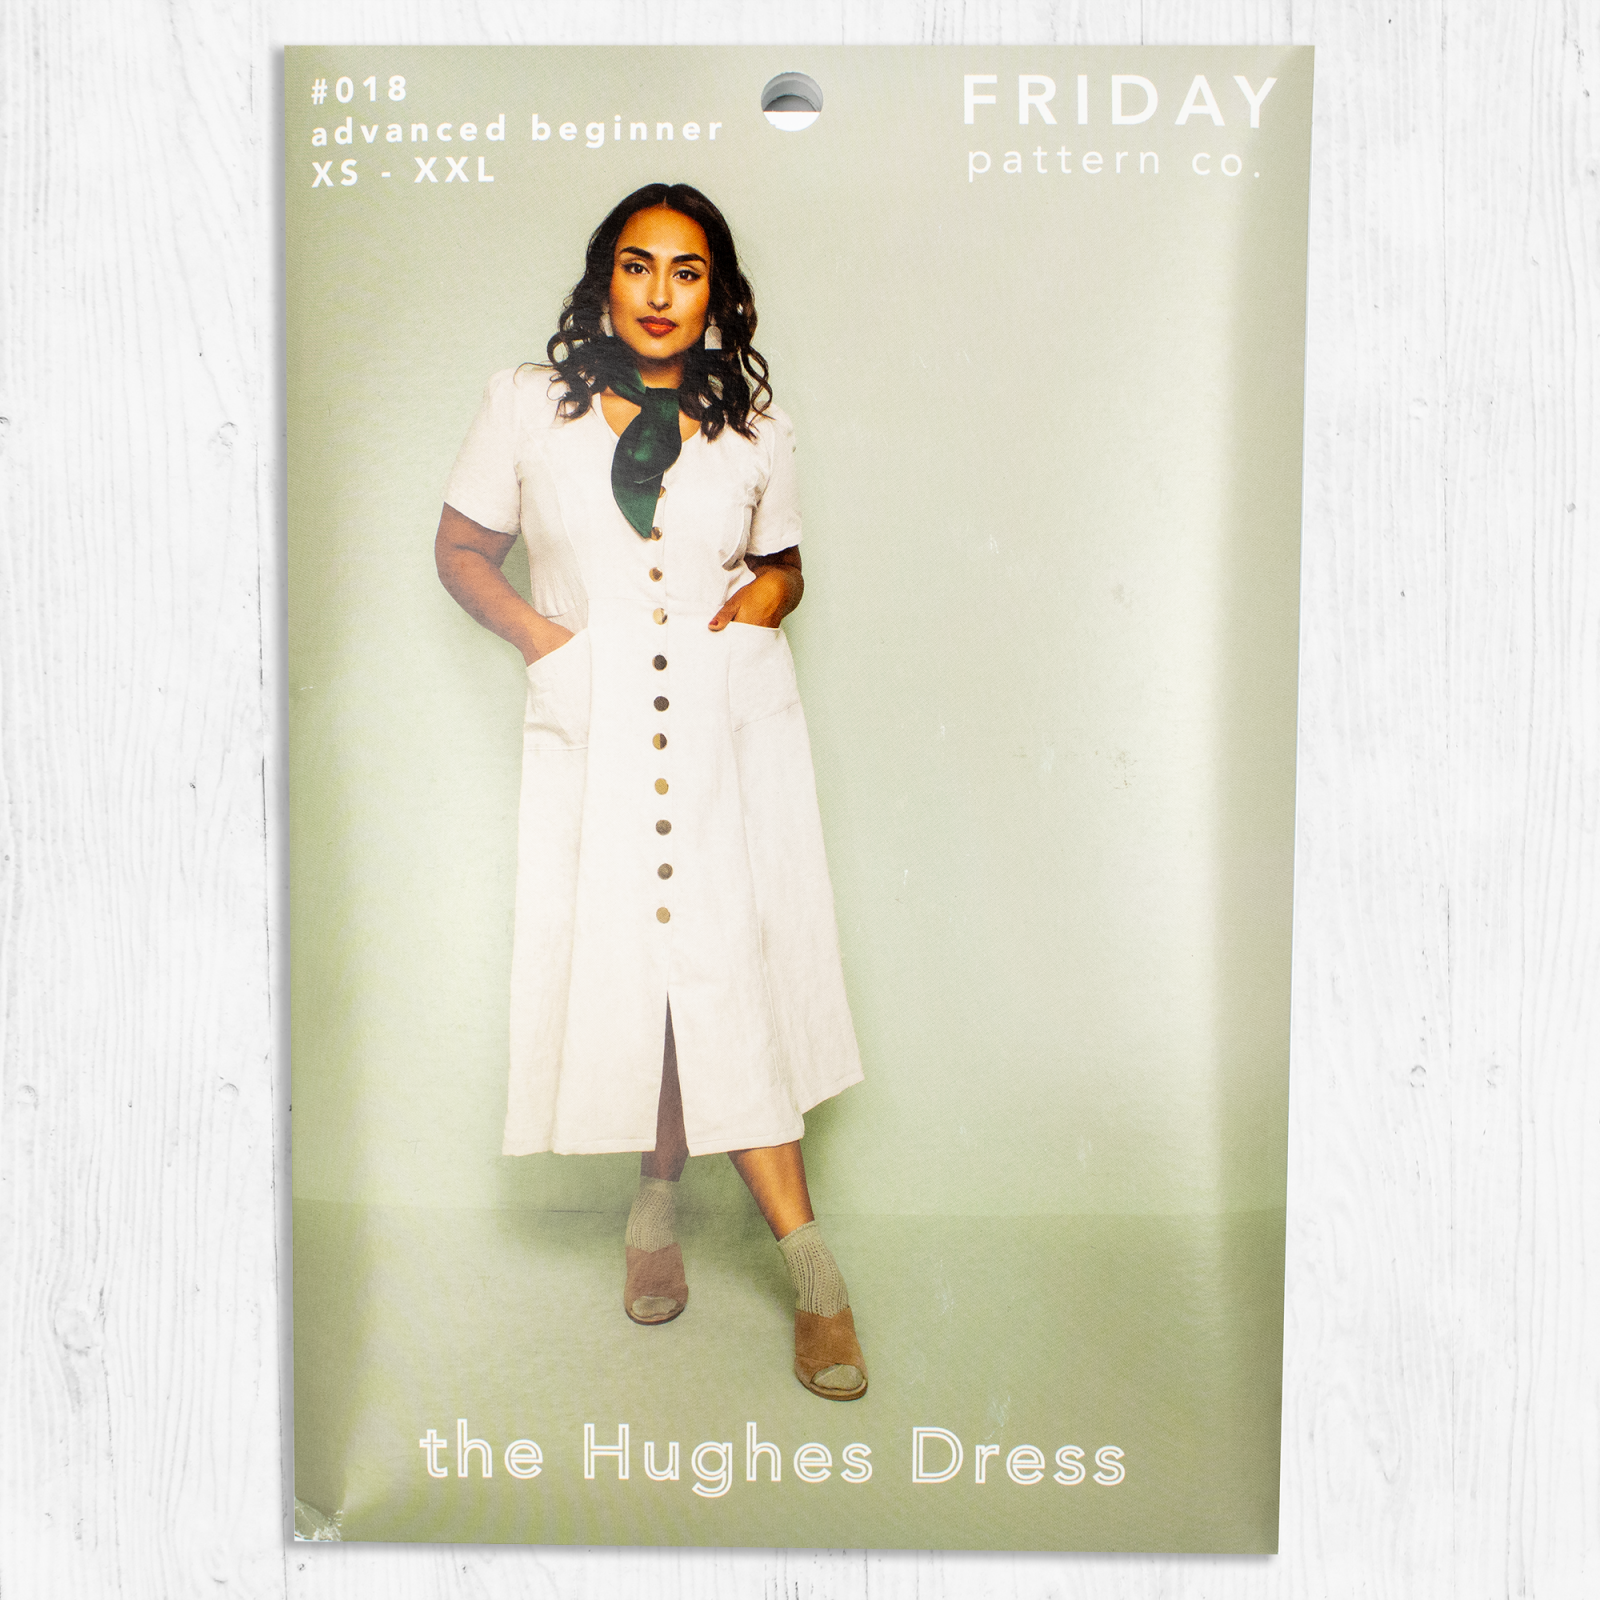 Friday Pattern Co. - The Hughes Dress